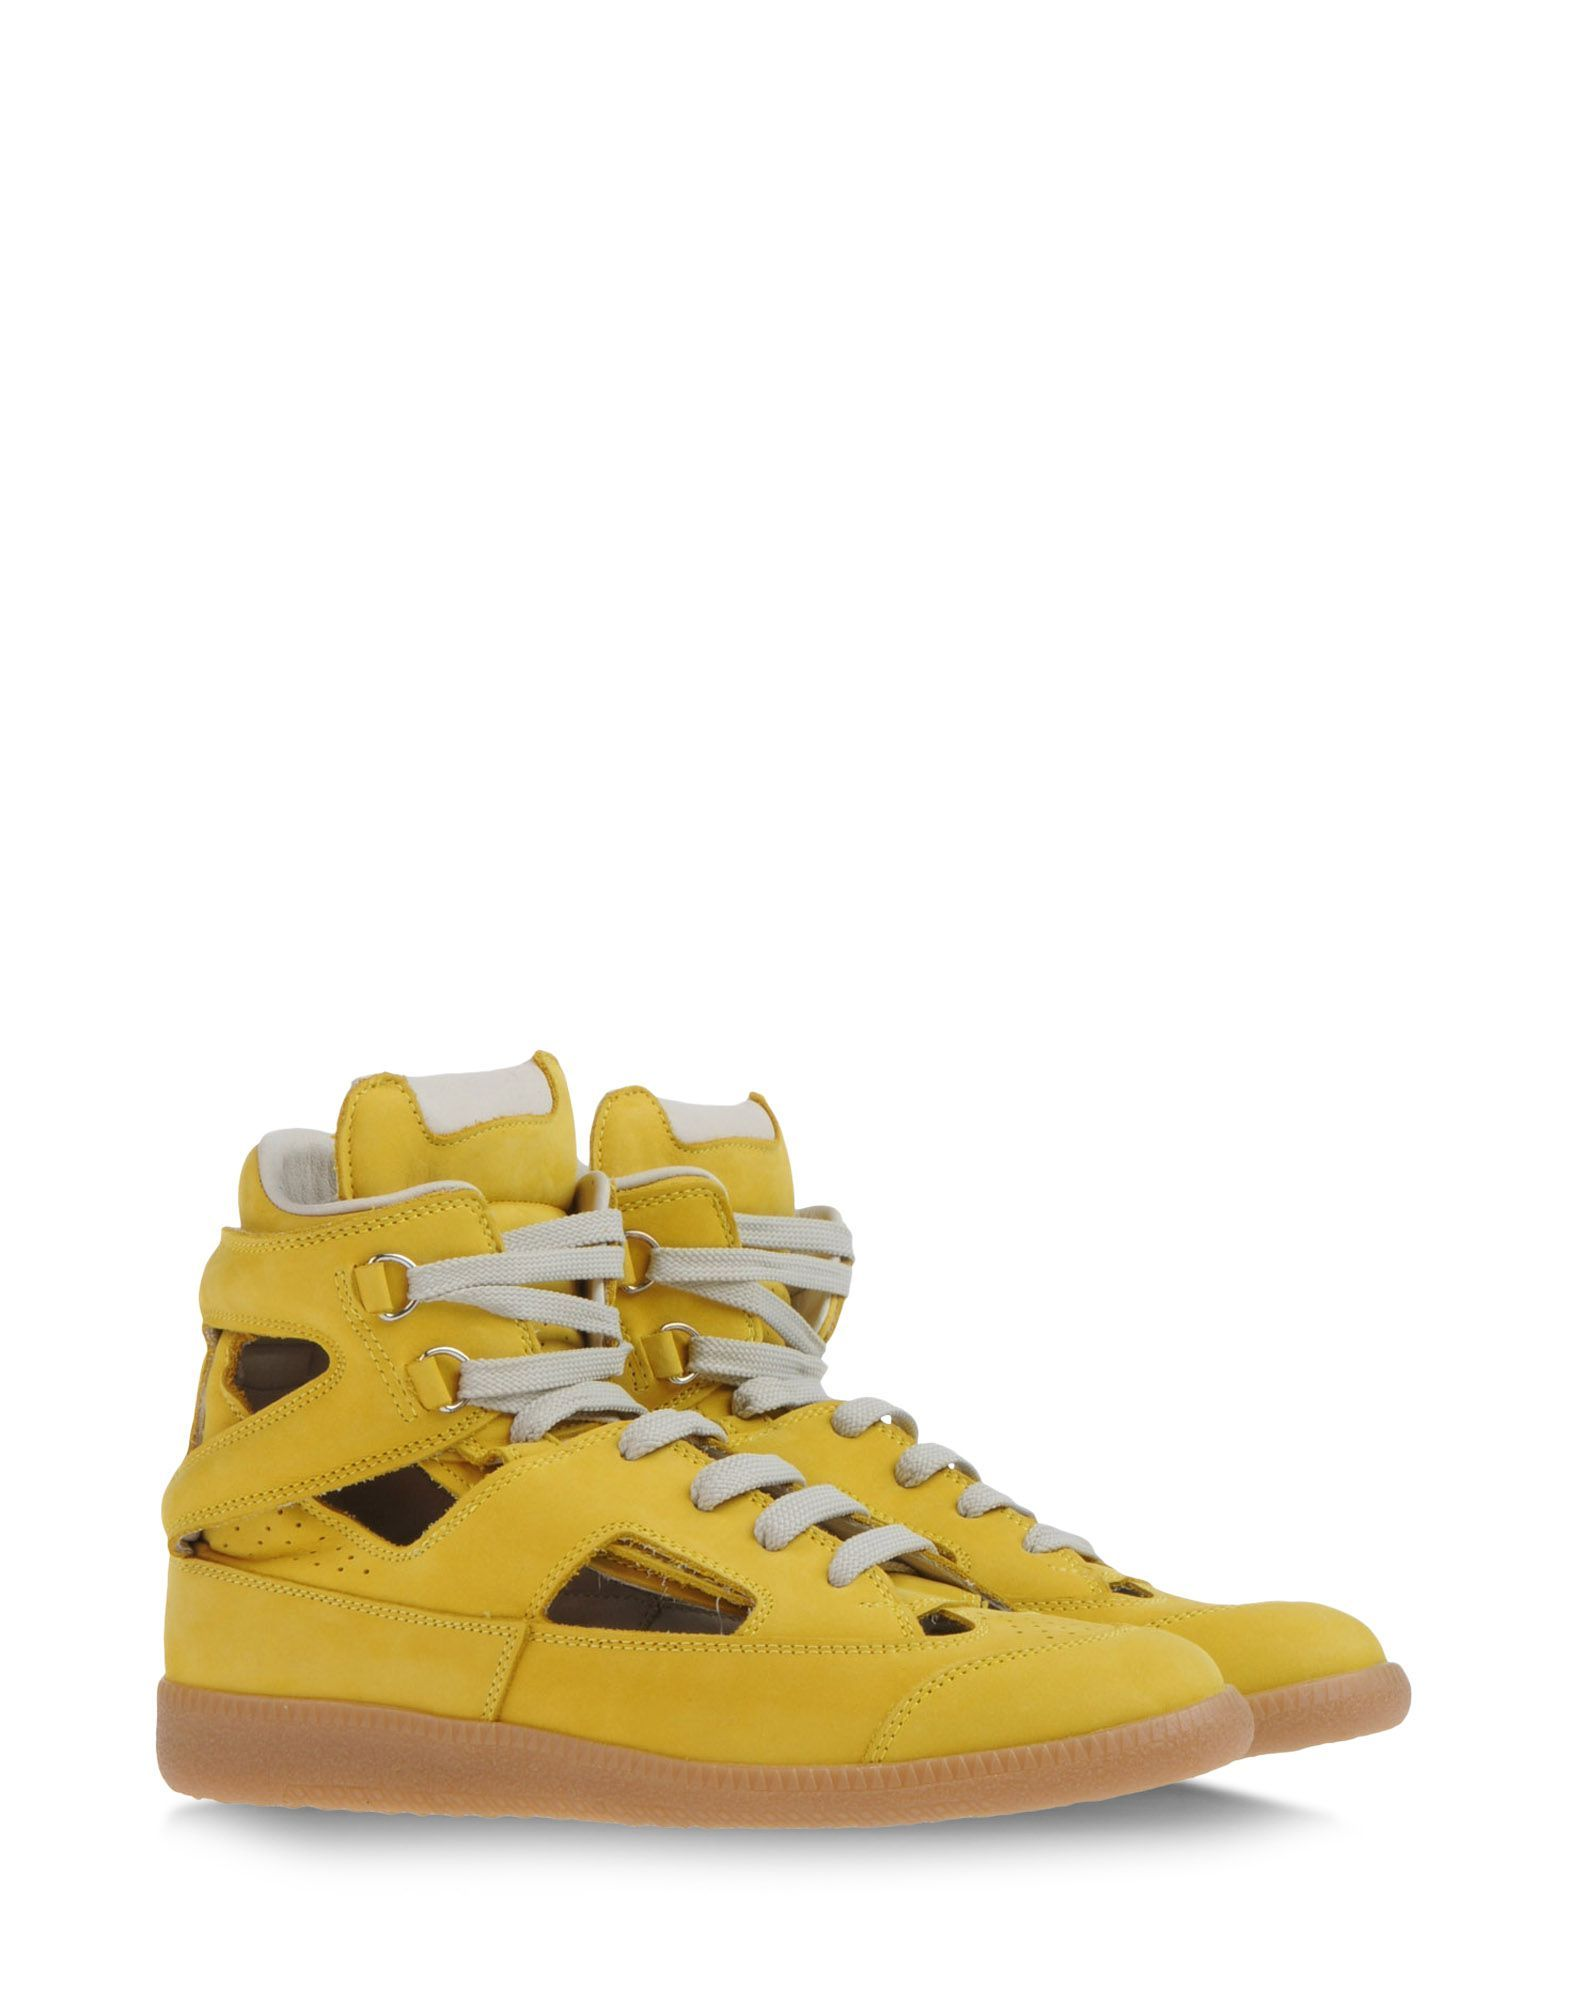 Shop online Women s Maison Martin Margiela 22 at shoescribe.com ... 4bade09d89